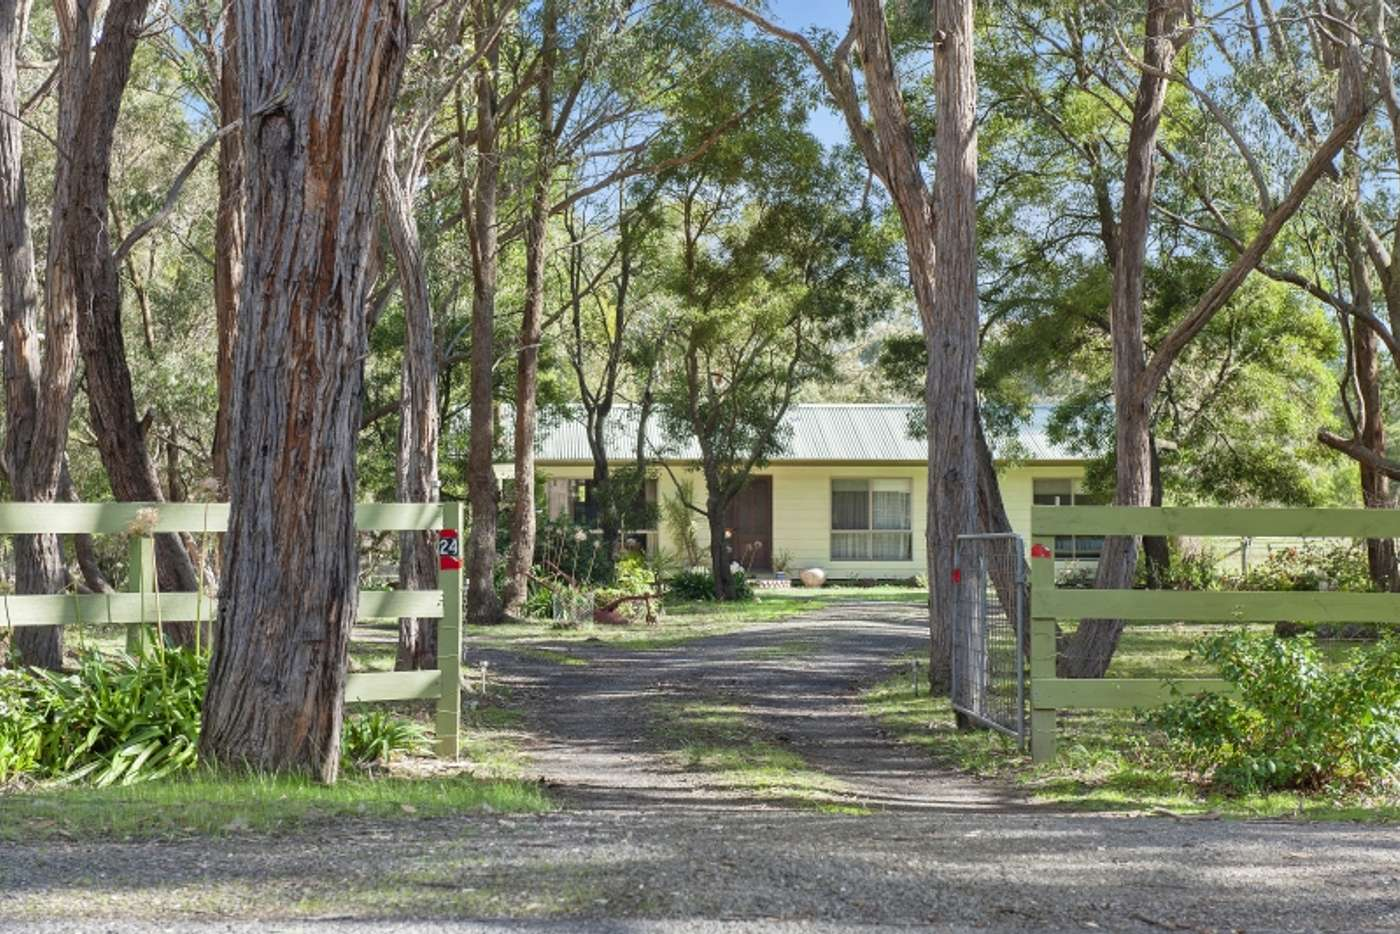 Main view of Homely house listing, 24 Grevillea Drive, Enfield VIC 3352